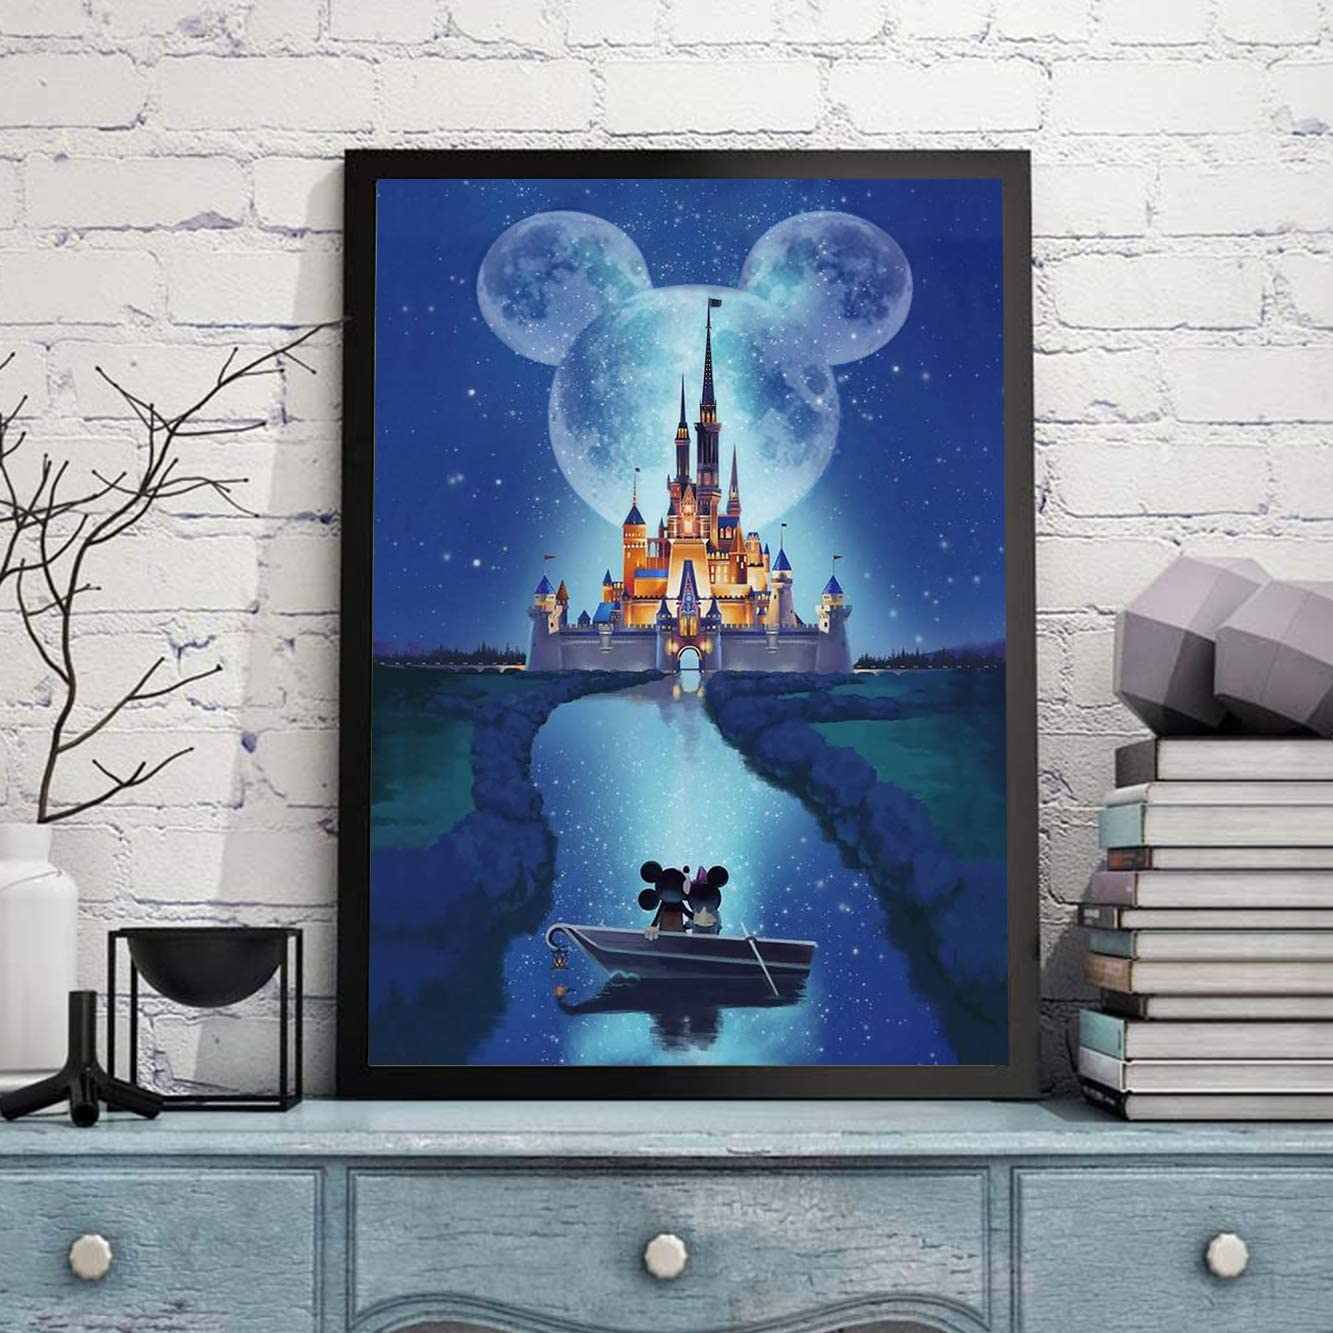 Disney Castle Cross Stitch Full Drill Suitable for Home Decoration Handmade Paintings for Kids and Adults DIY 5D Diamond Painting Disney by Number Kits